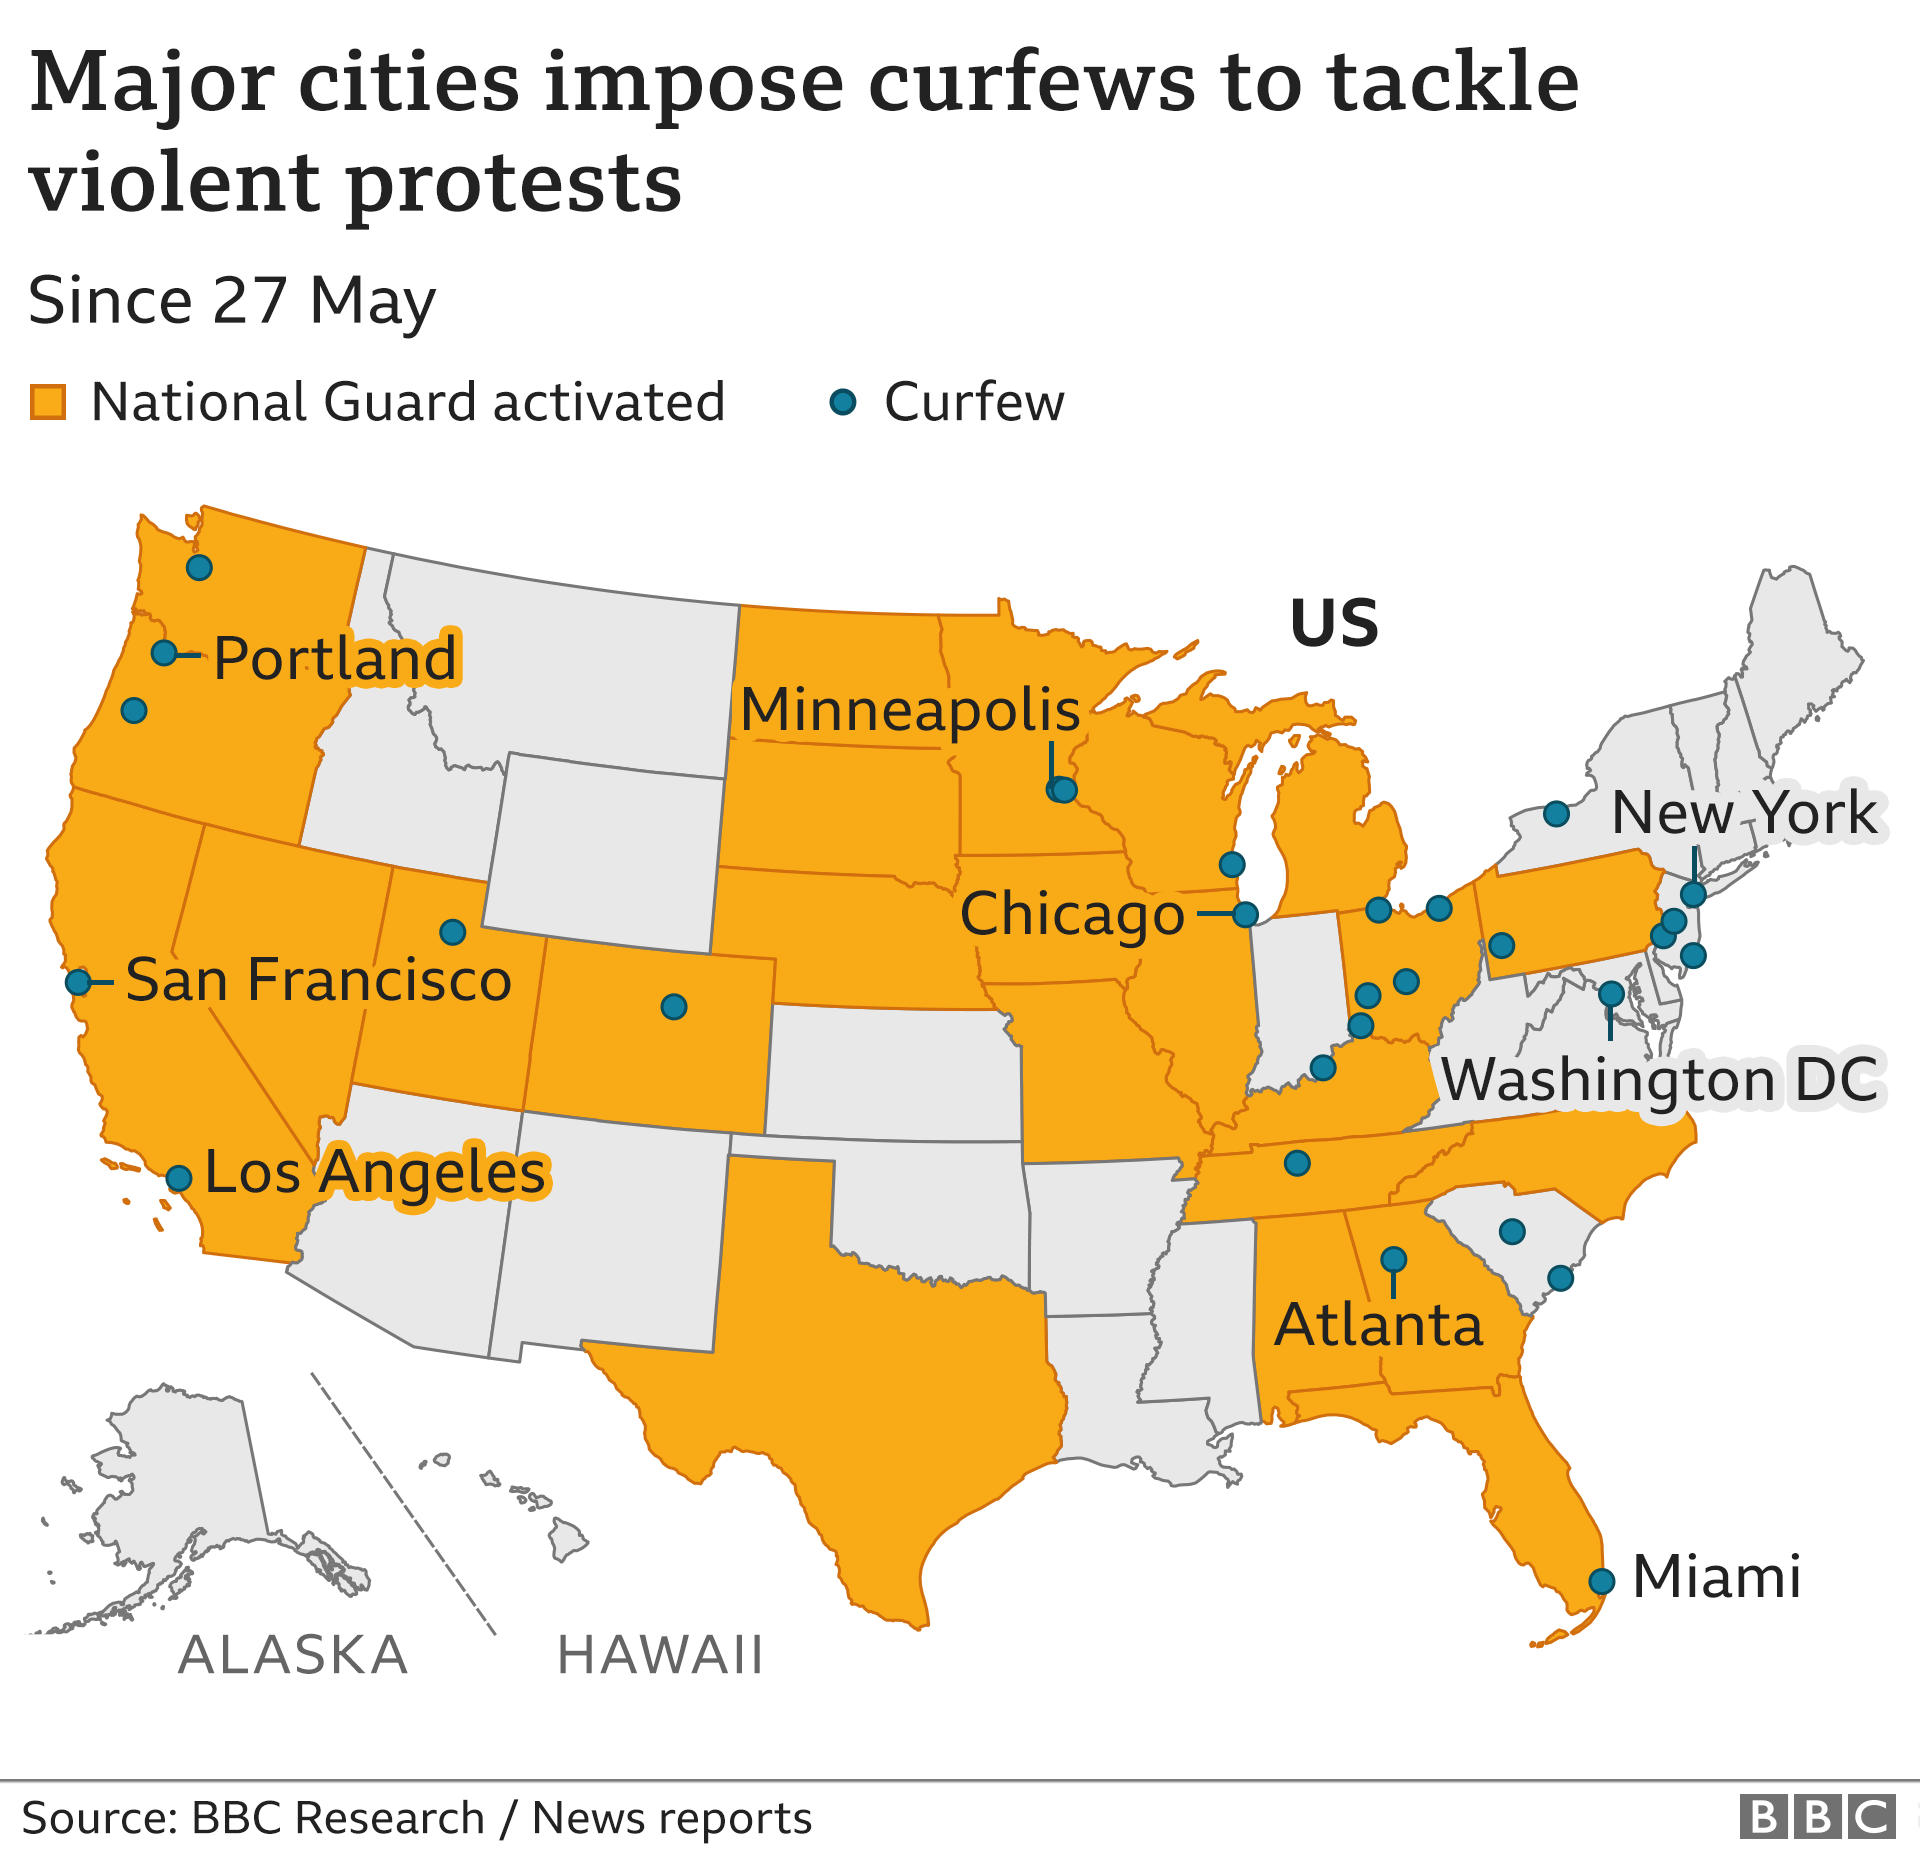 Map of major cities that have imposed curfews to tackle violent protests